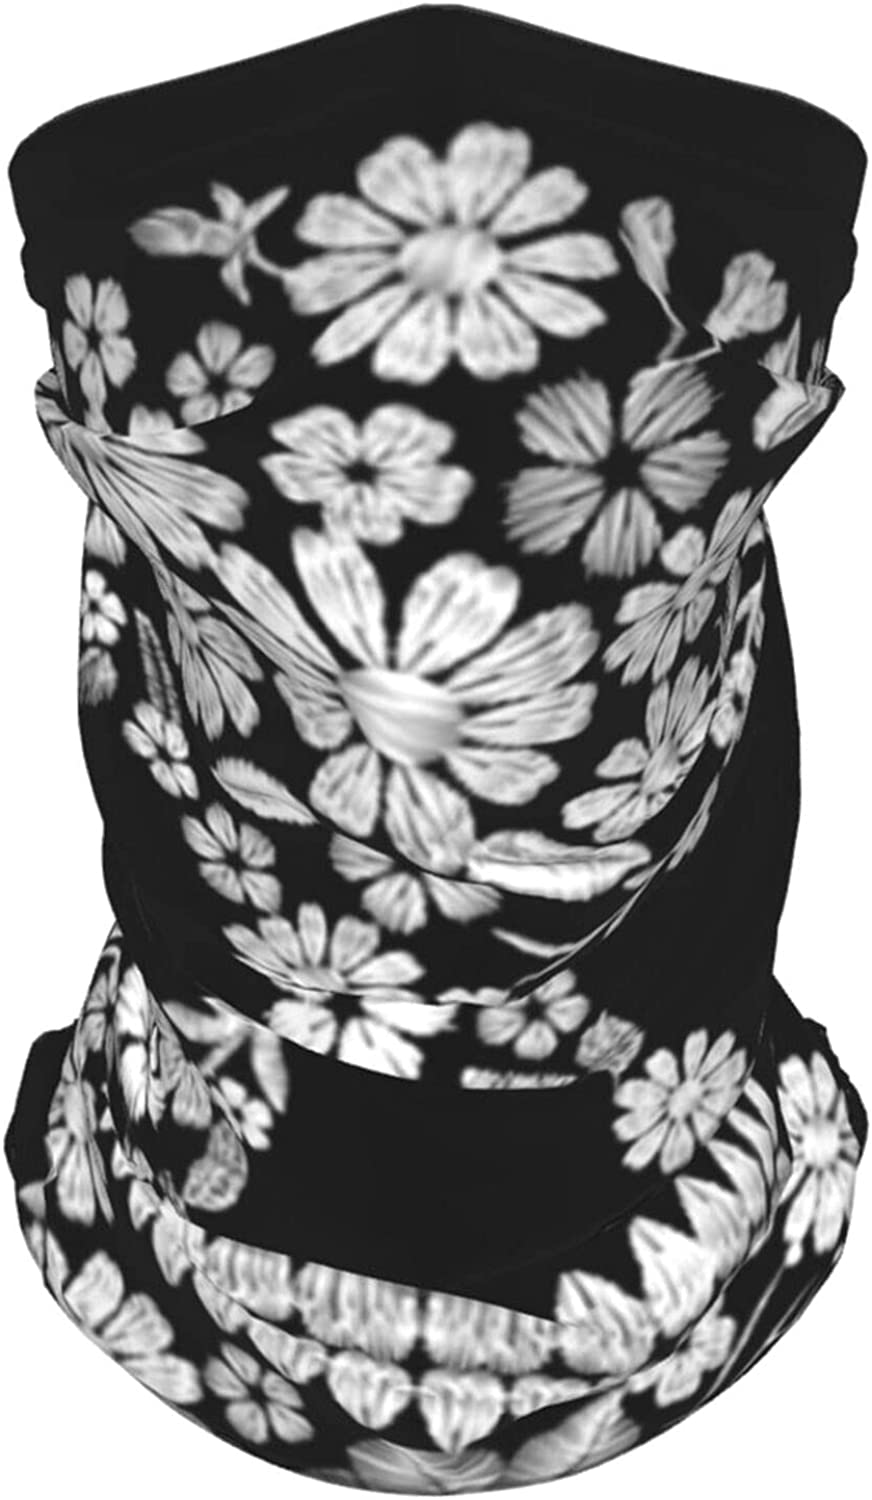 Vintage Embroidered Flower Skull Muertos Dead Holidays Nature Summer Ice Silk Breathable Face Mask Neck Gaiter Scarf Bandanas for Fishing,Hiking,Running,Motorcycle and Daily Wear